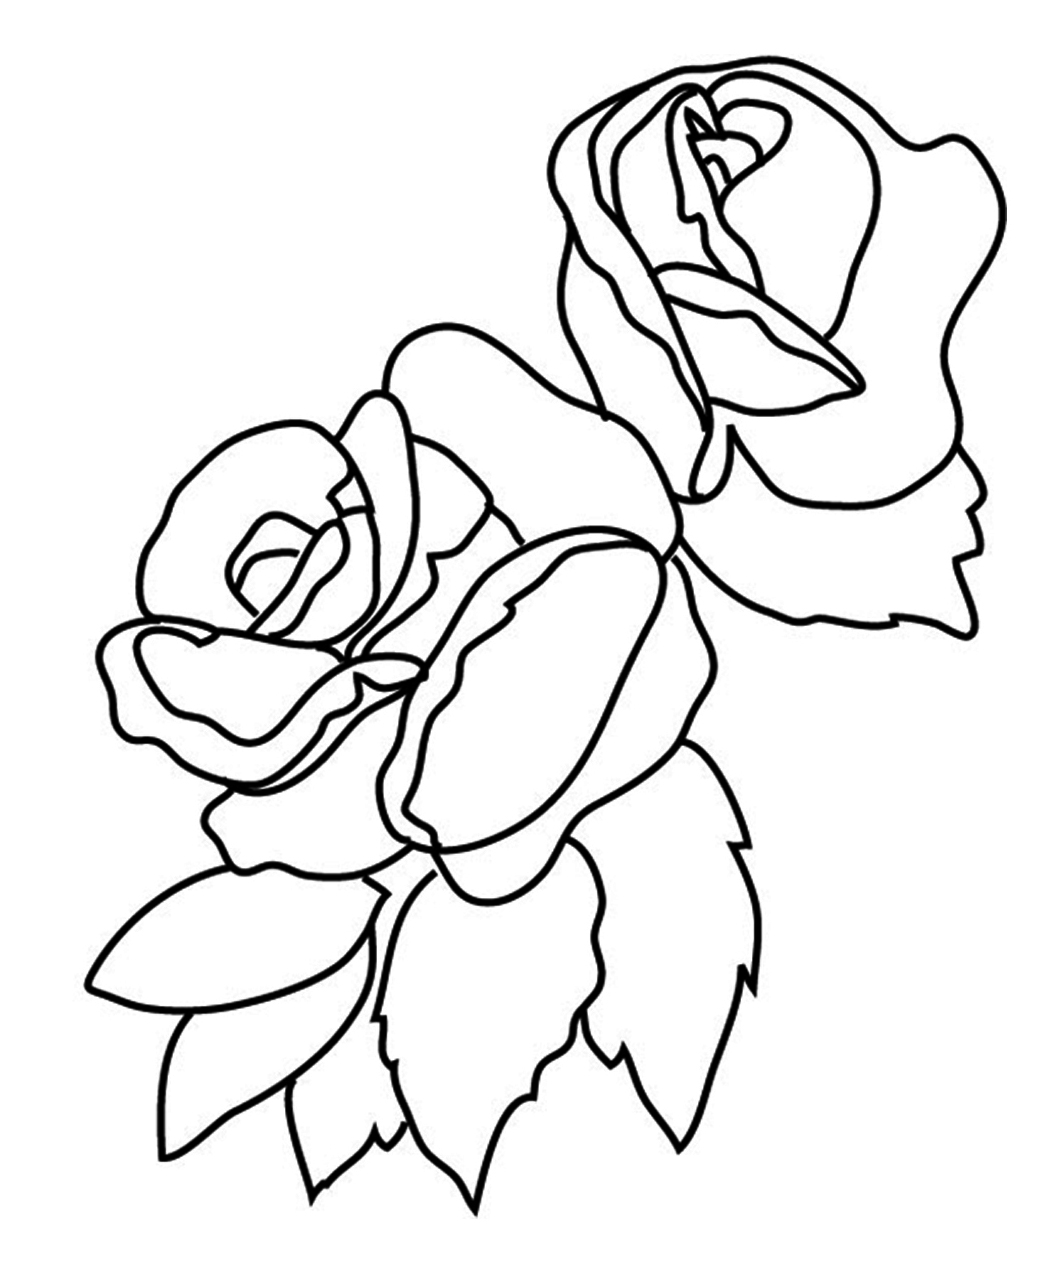 flower coloring pages roses - Colour In Sheet